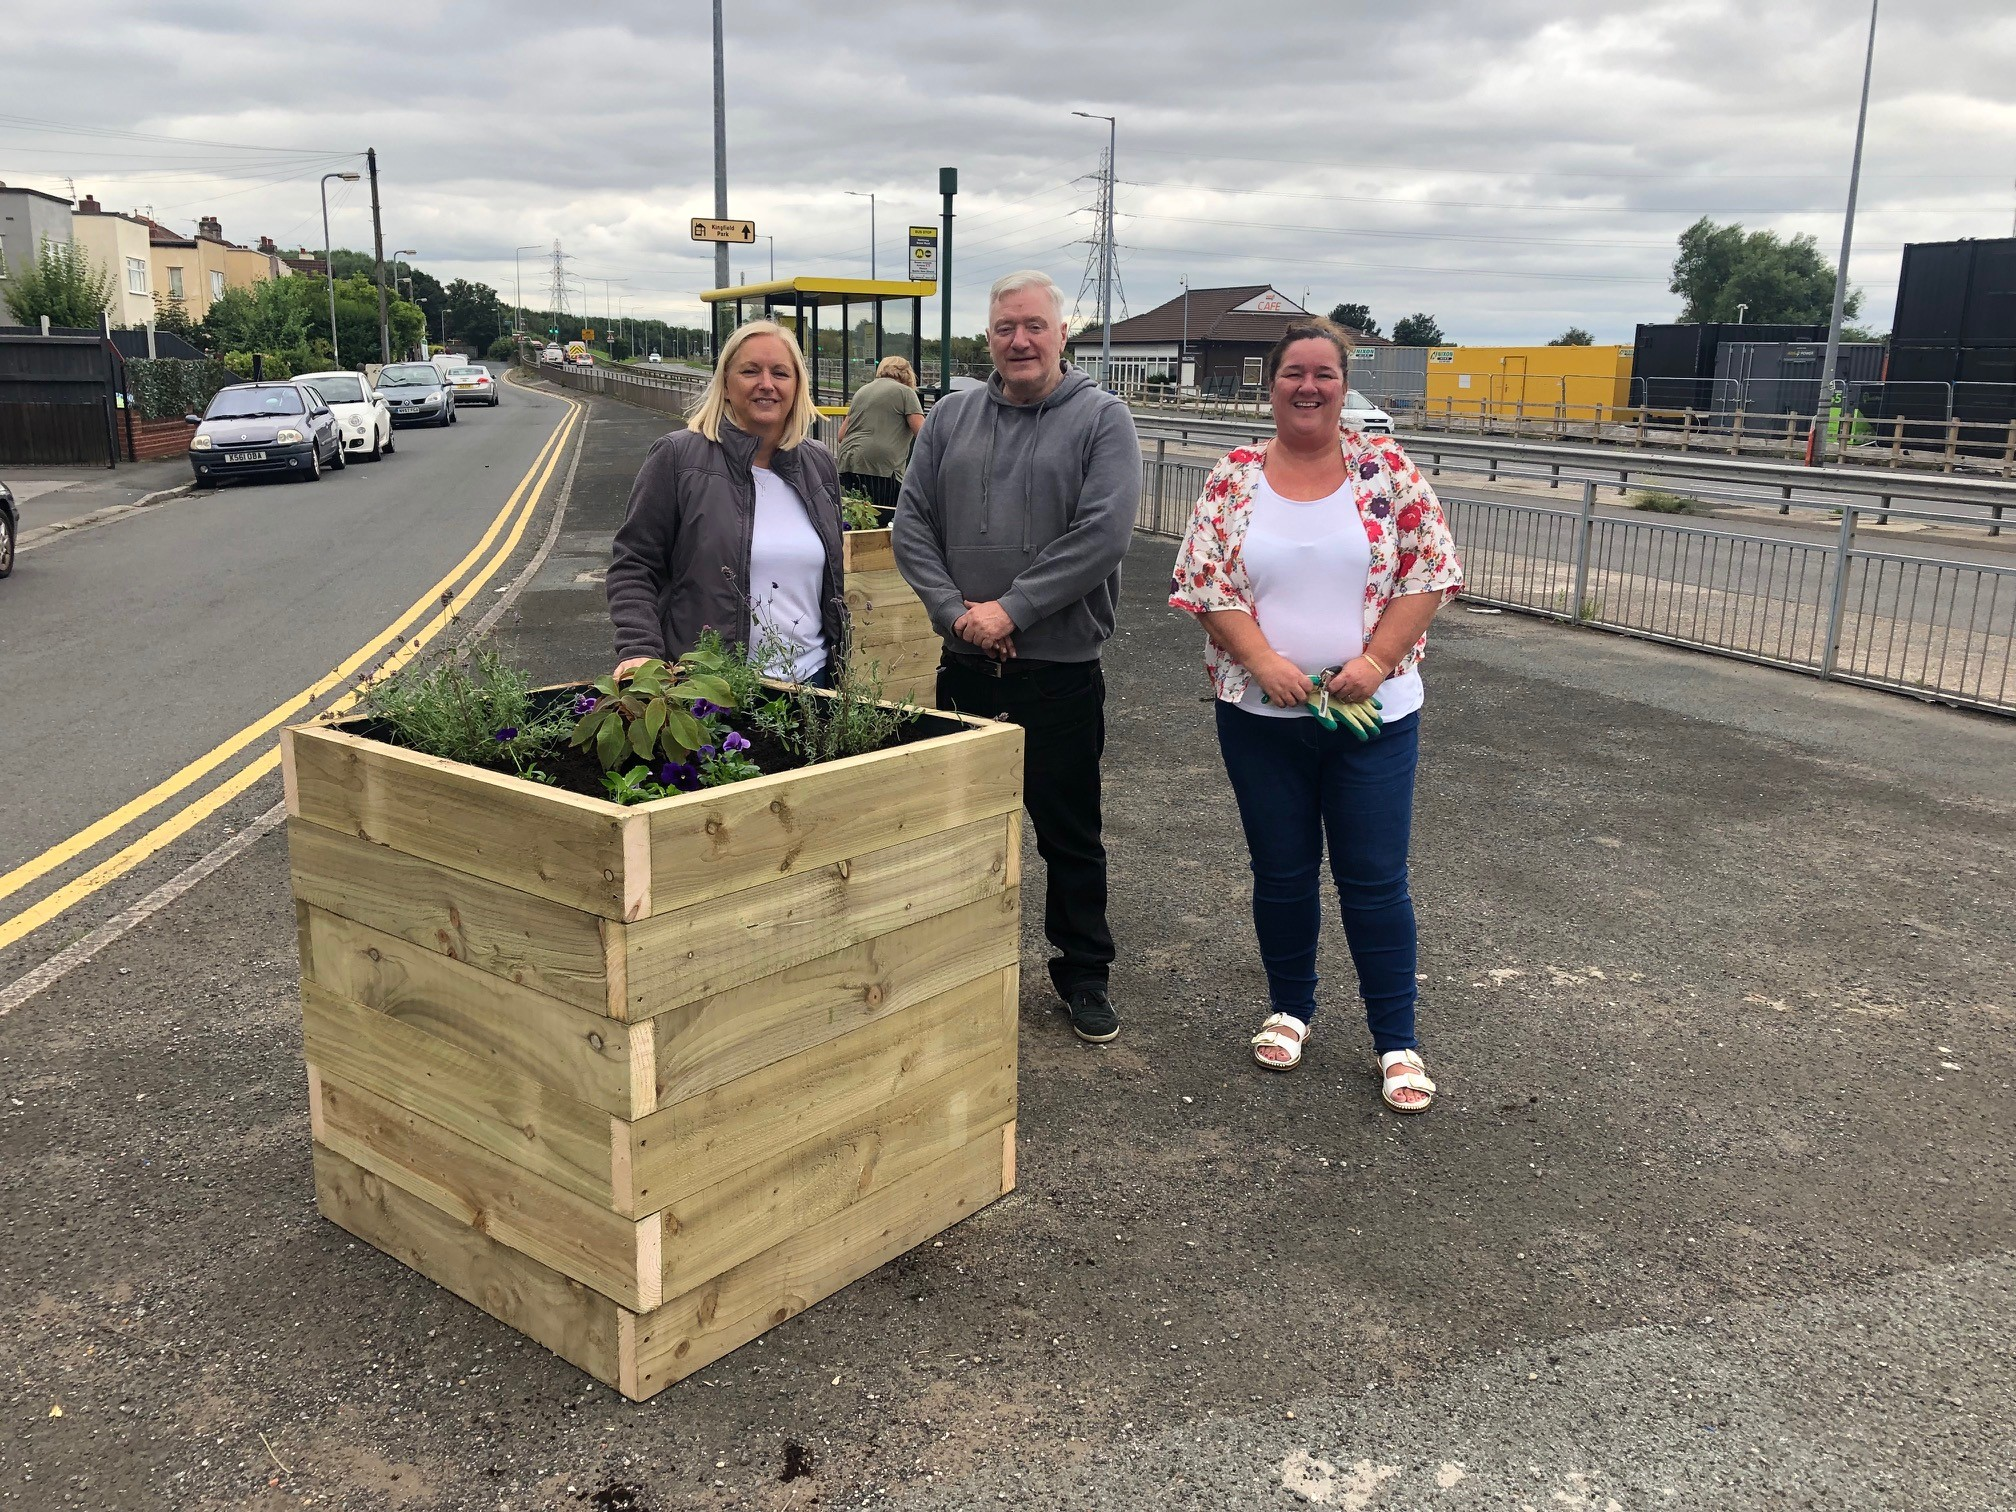 Three new planters for Northway!